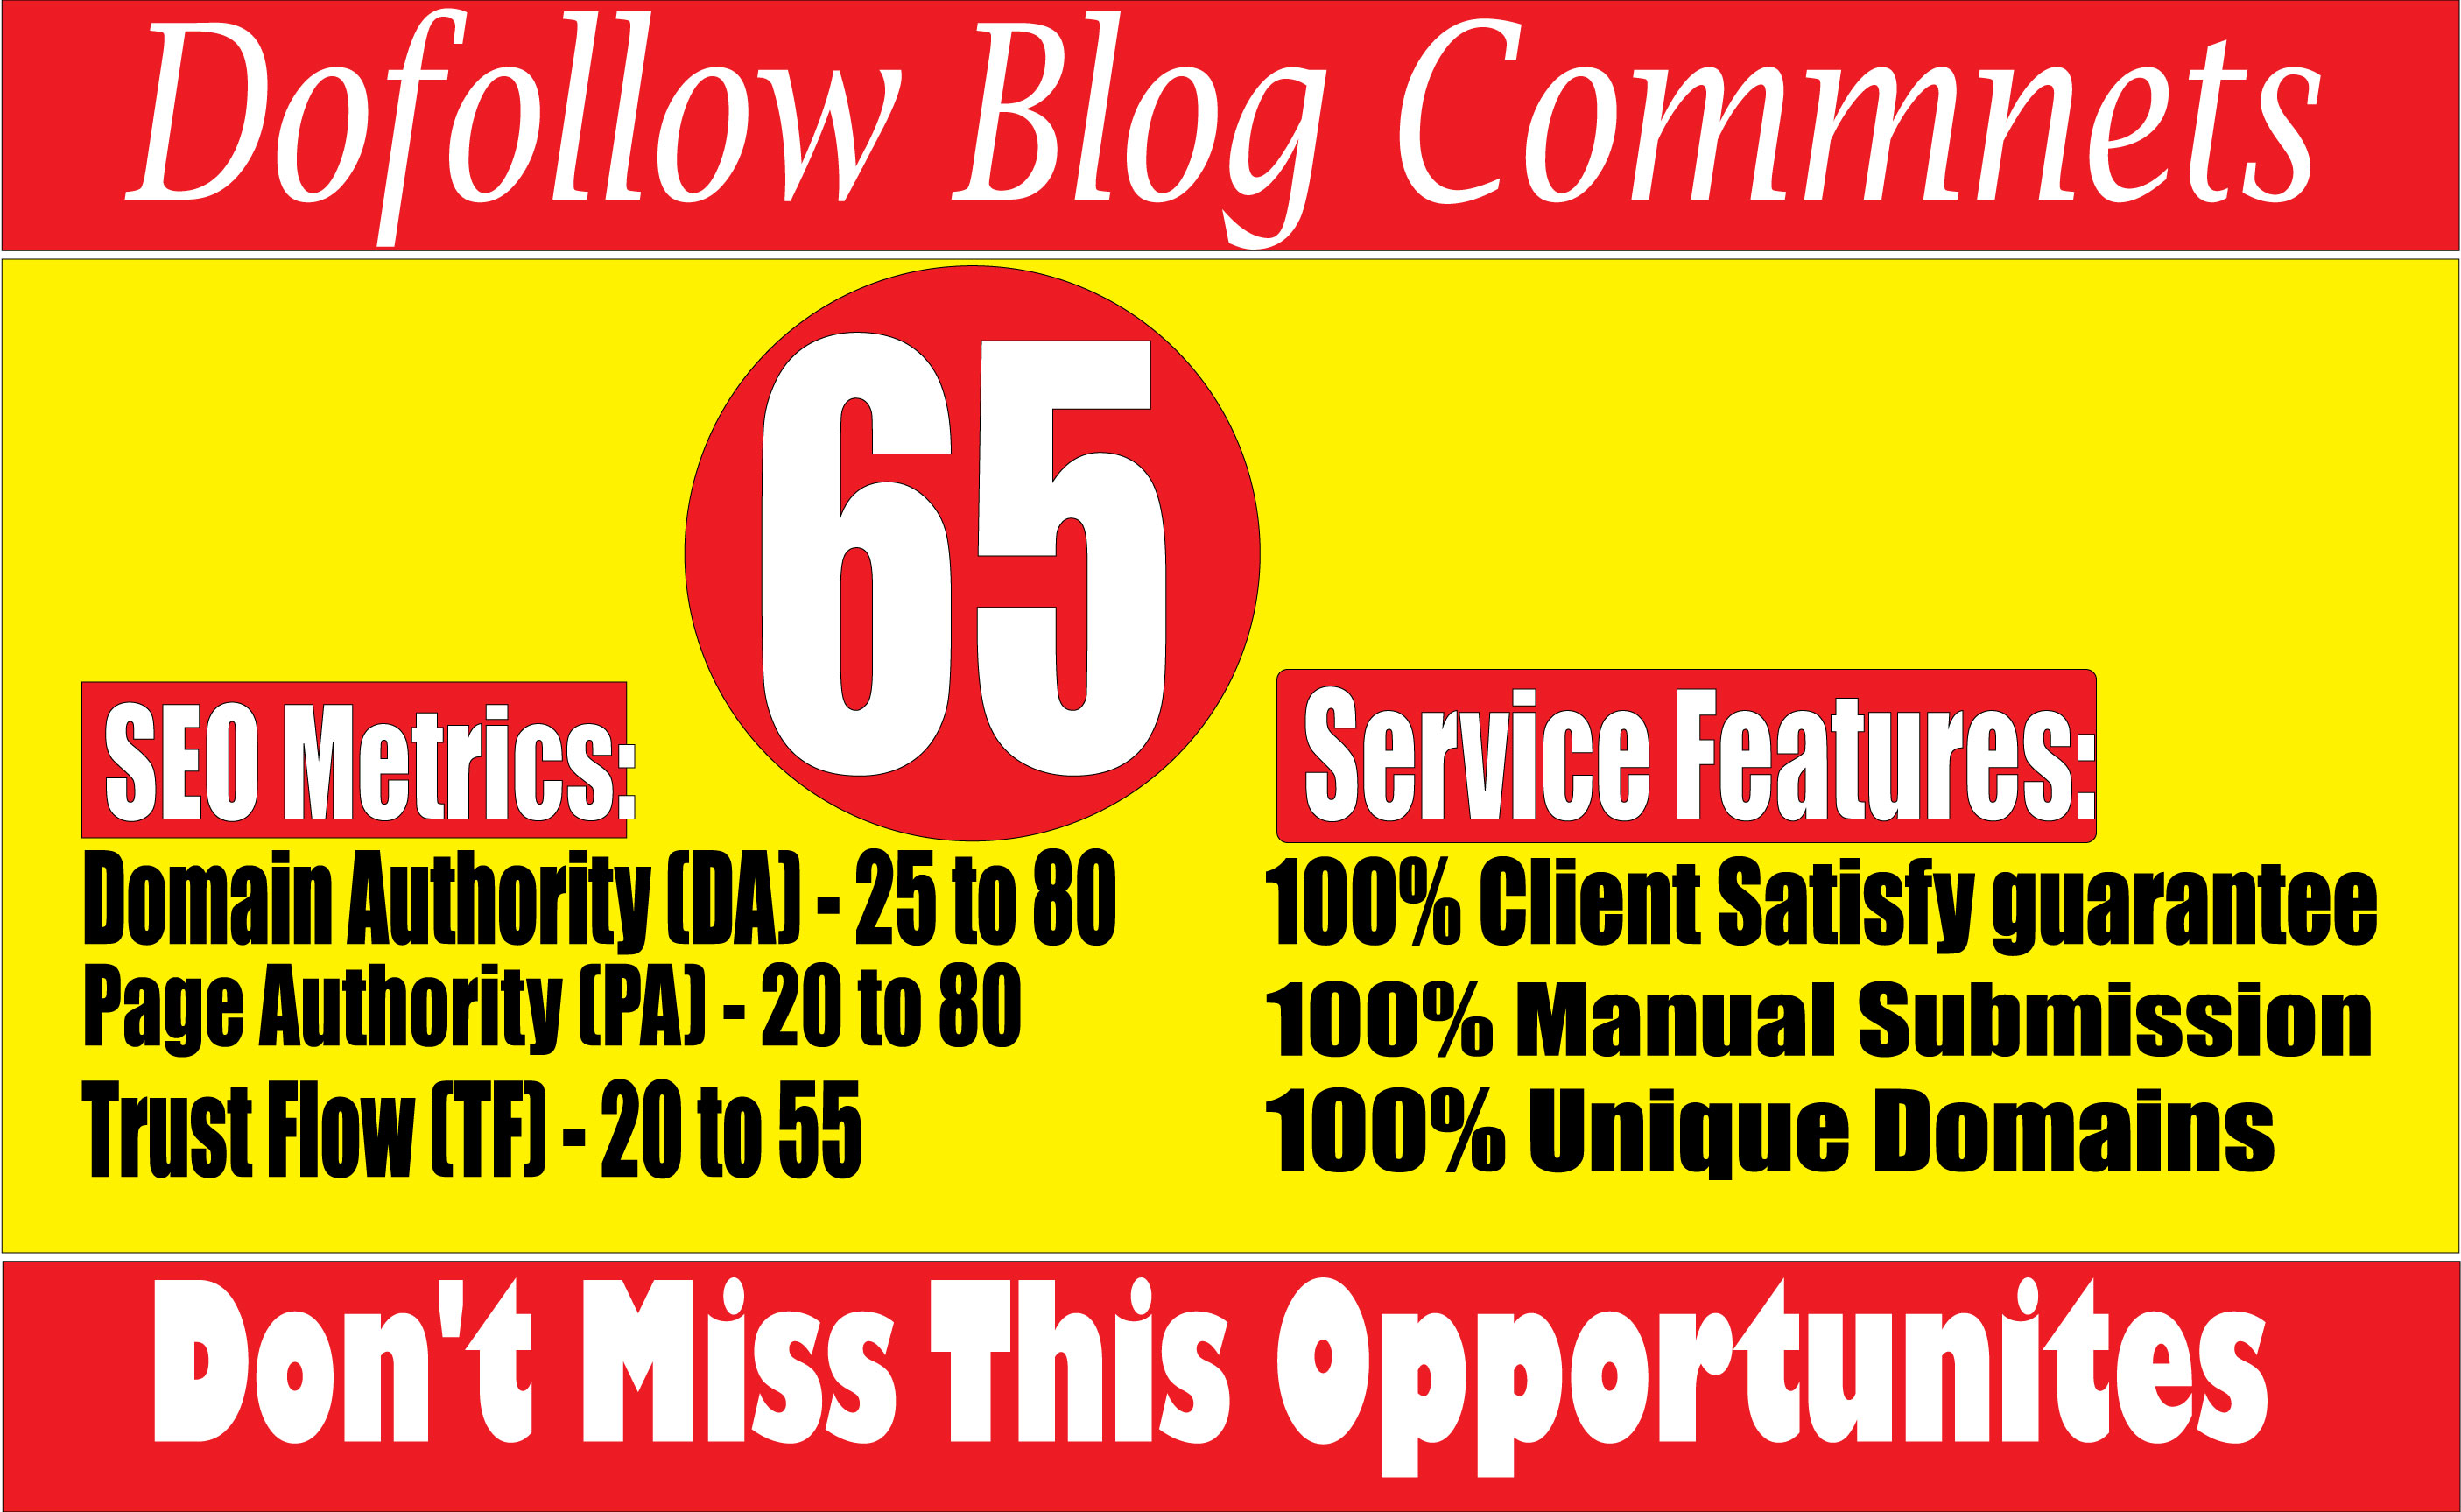 I will create 65 High Quality Dofollow Blog Comments